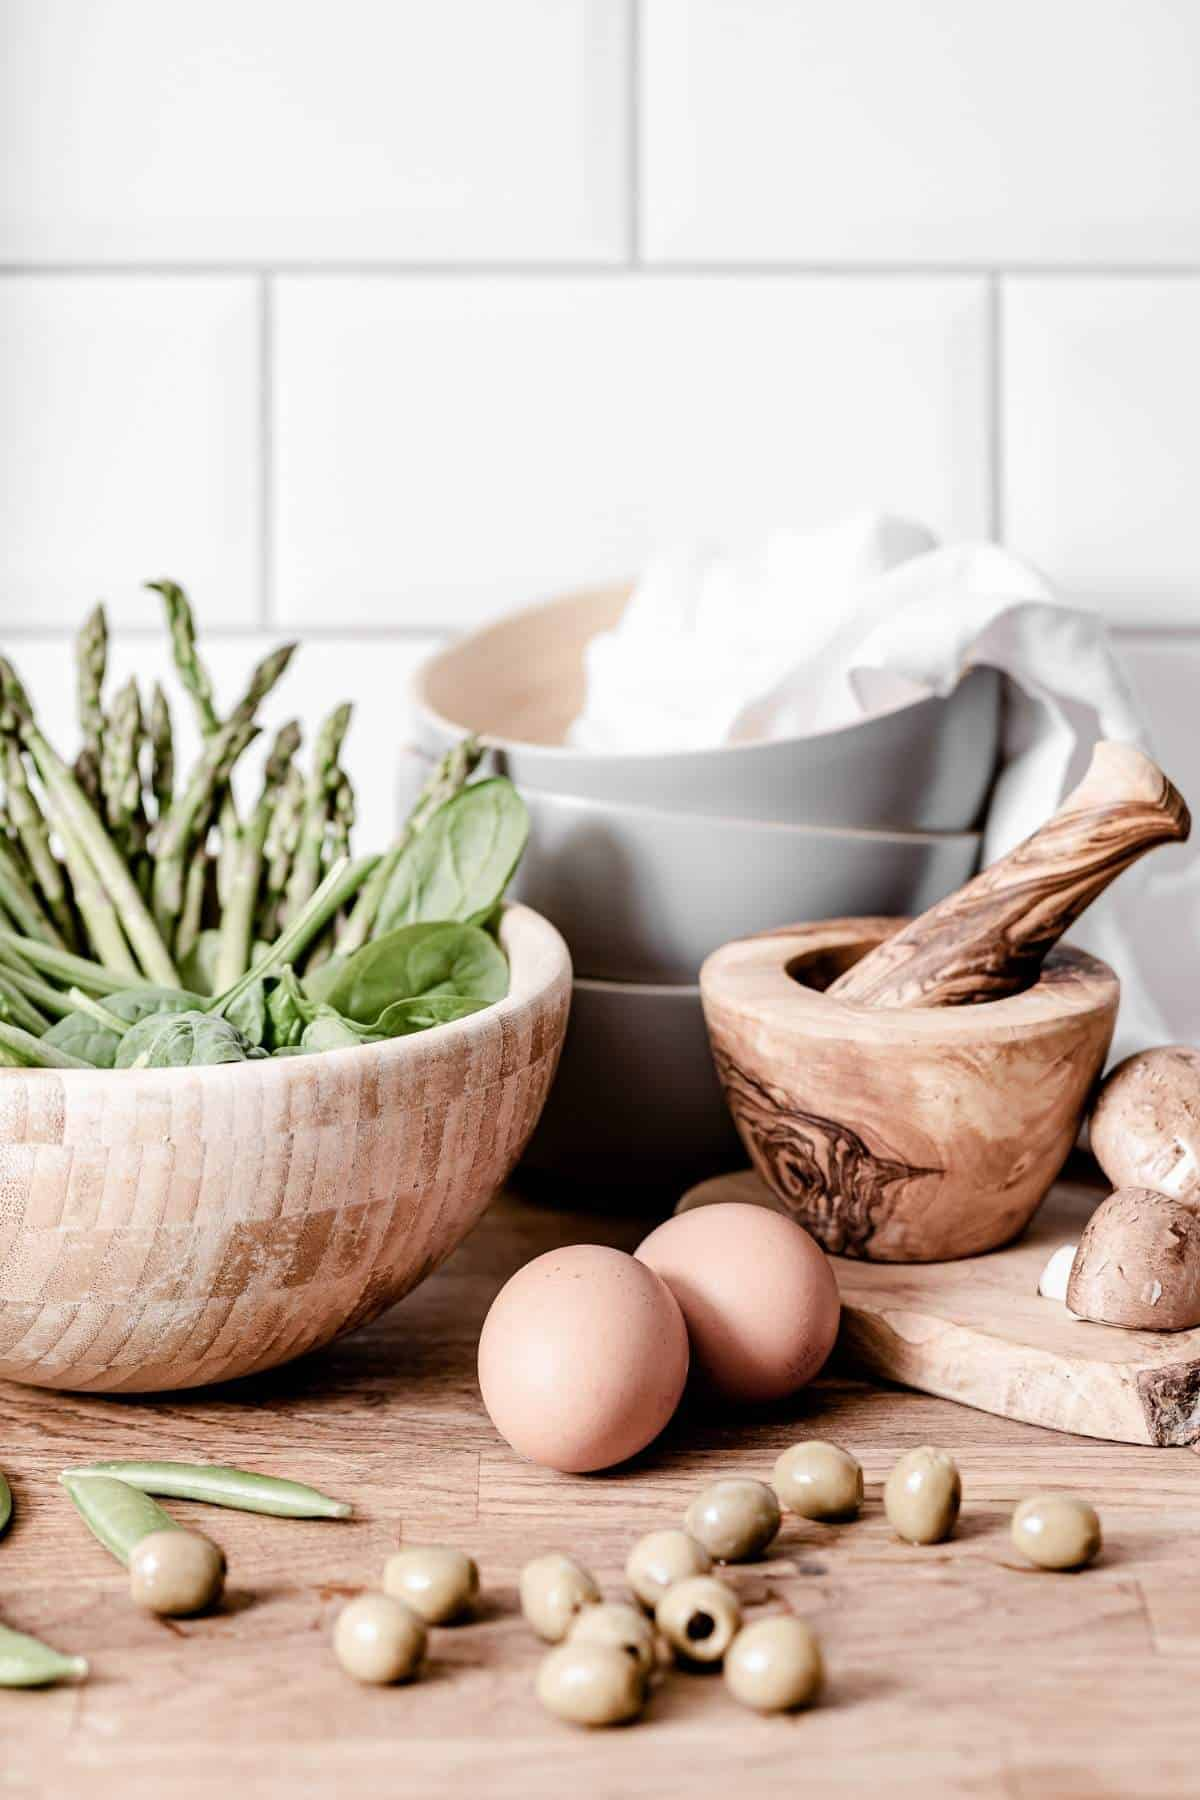 home kitchen with bowls and veggies